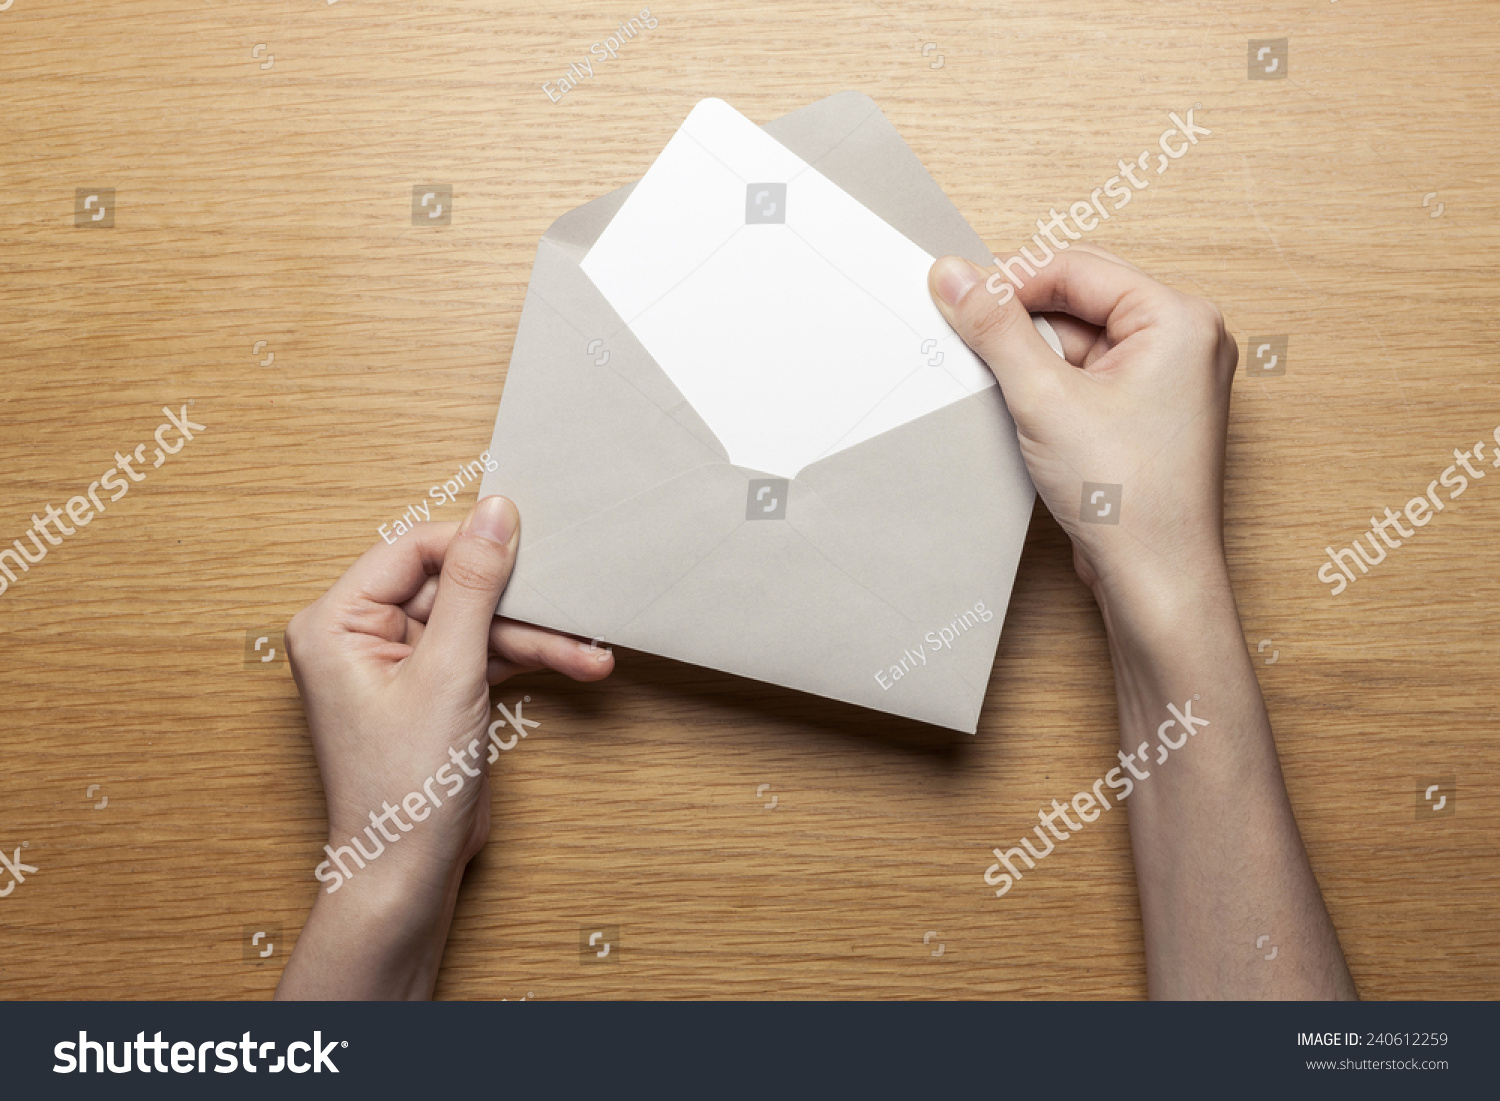 A female(woman) hand hold(open) a envelope and post card on the wood desk, top view at the studio.  #240612259